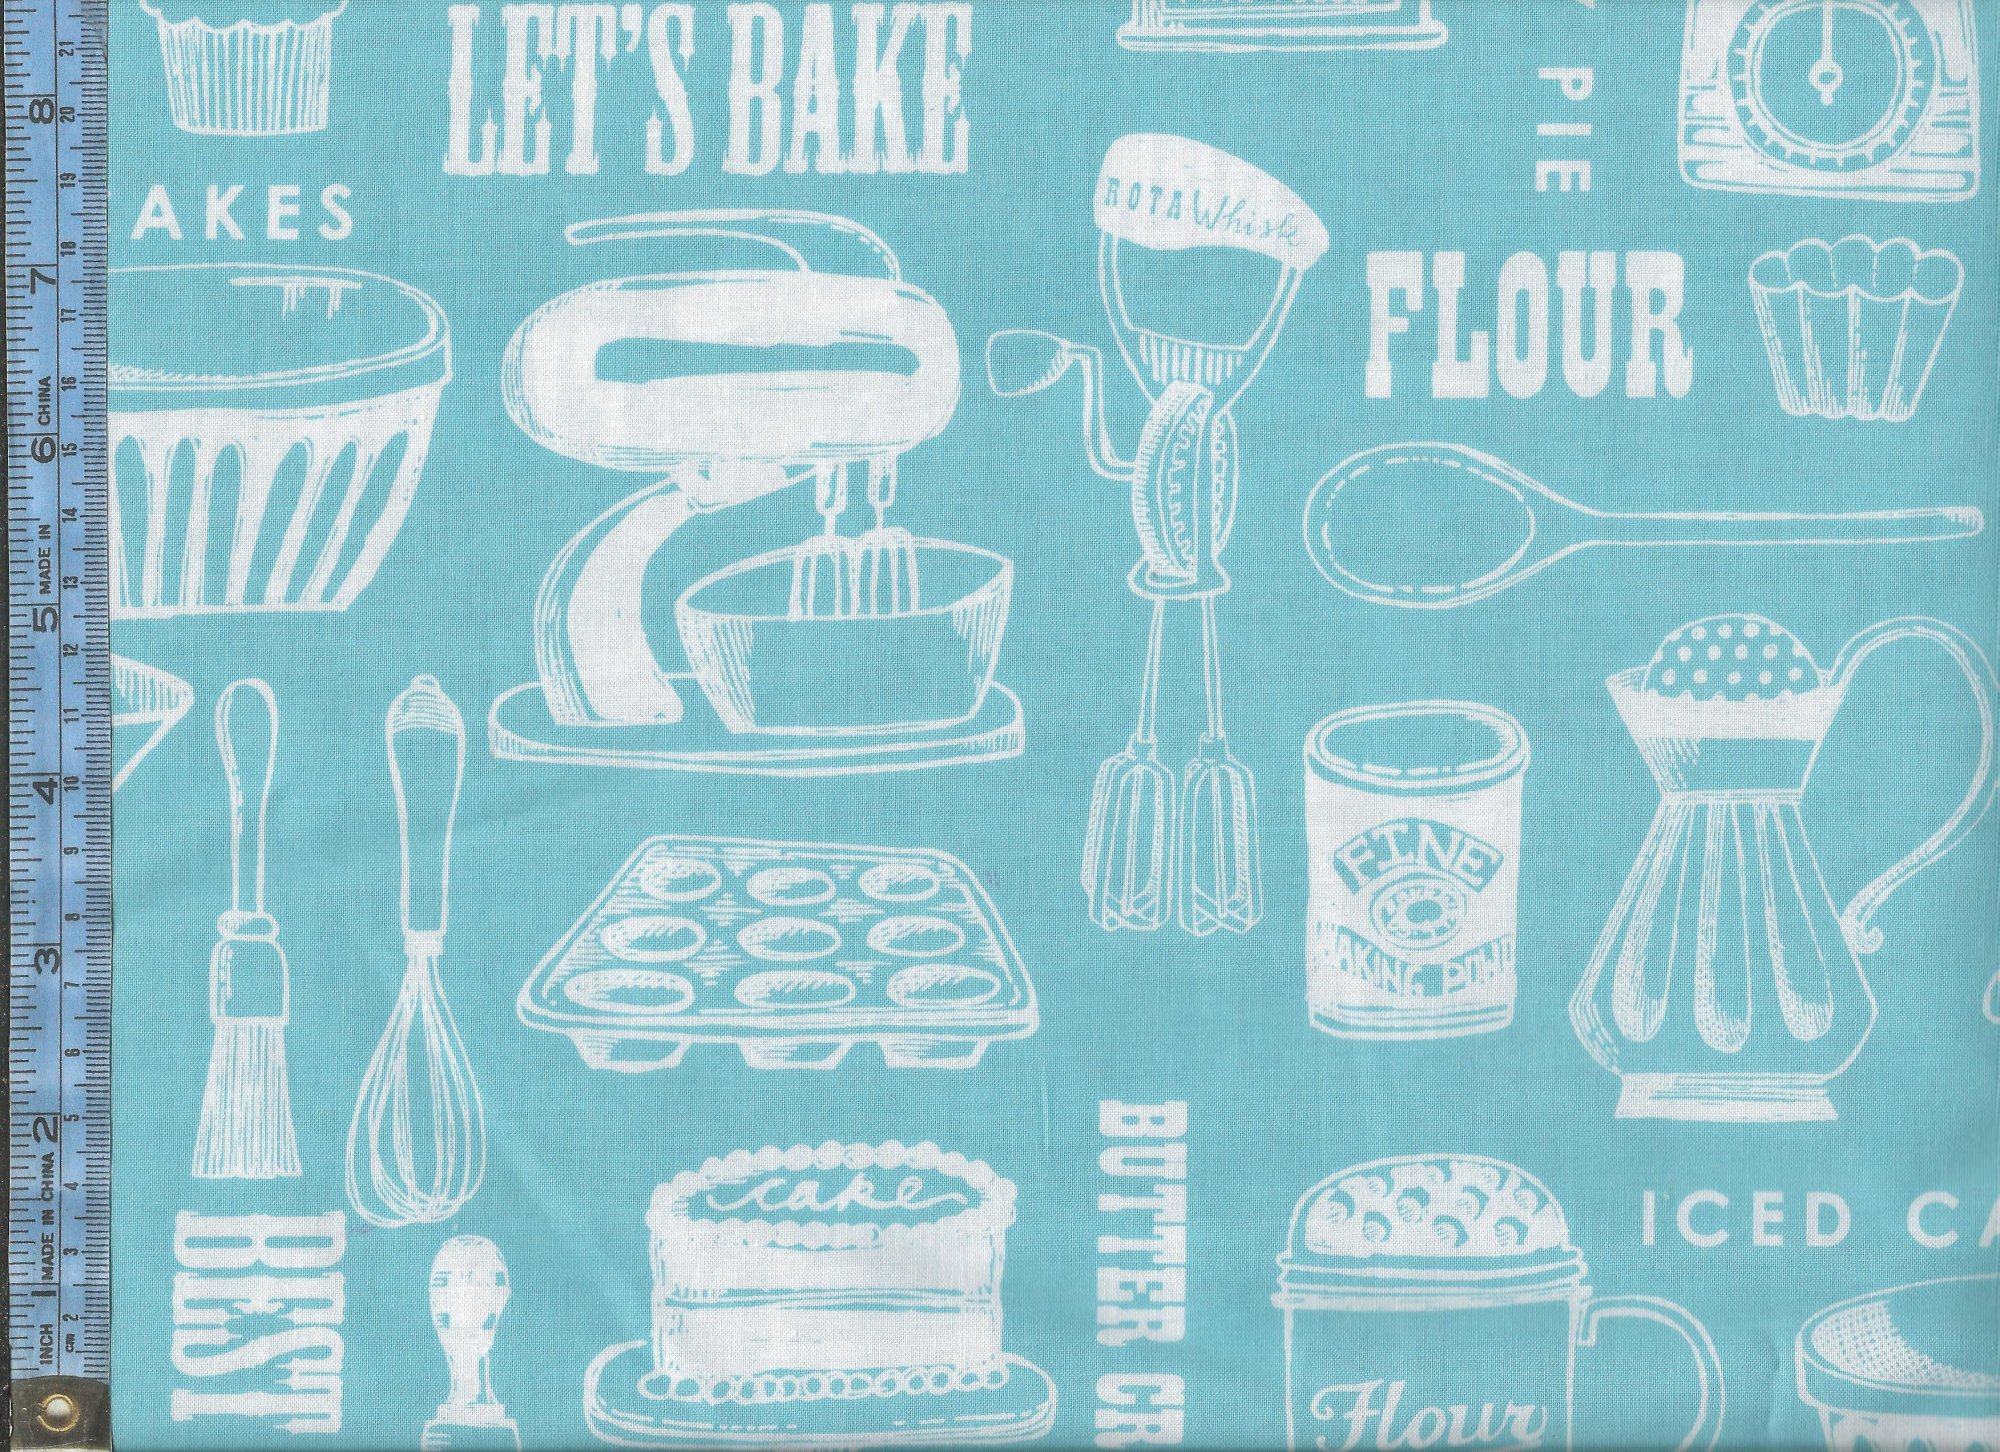 Butter Cream - white kitchen utensils on turquoise background - 1016055